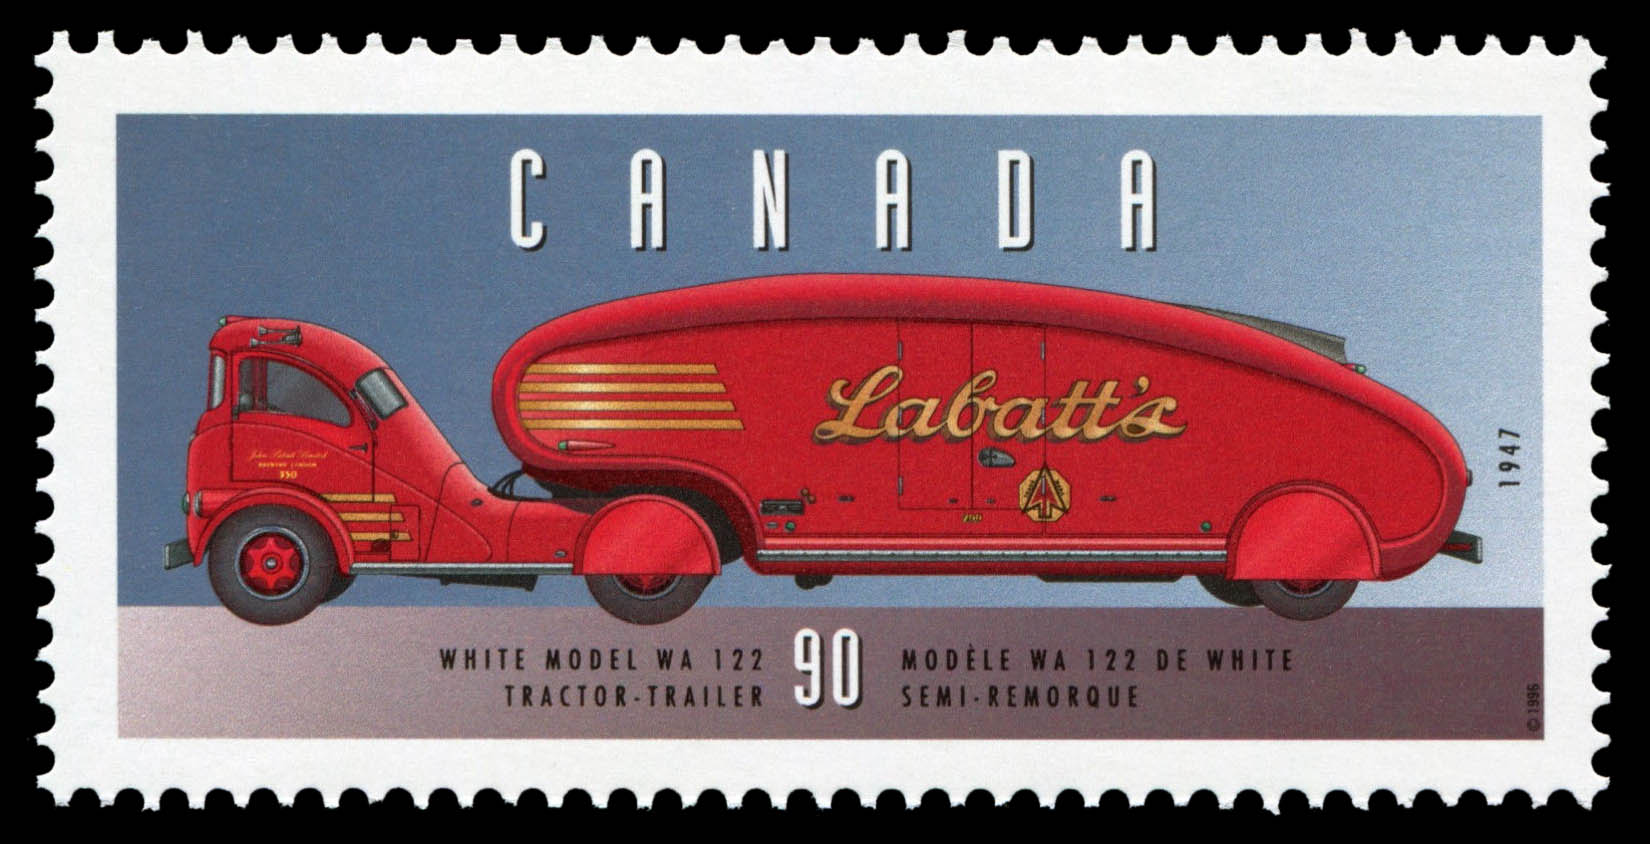 White Model WA 122, 1947, Tractor-Trailer Canada Postage Stamp | Historic Land Vehicles, Industrial and Commercial Vehicles